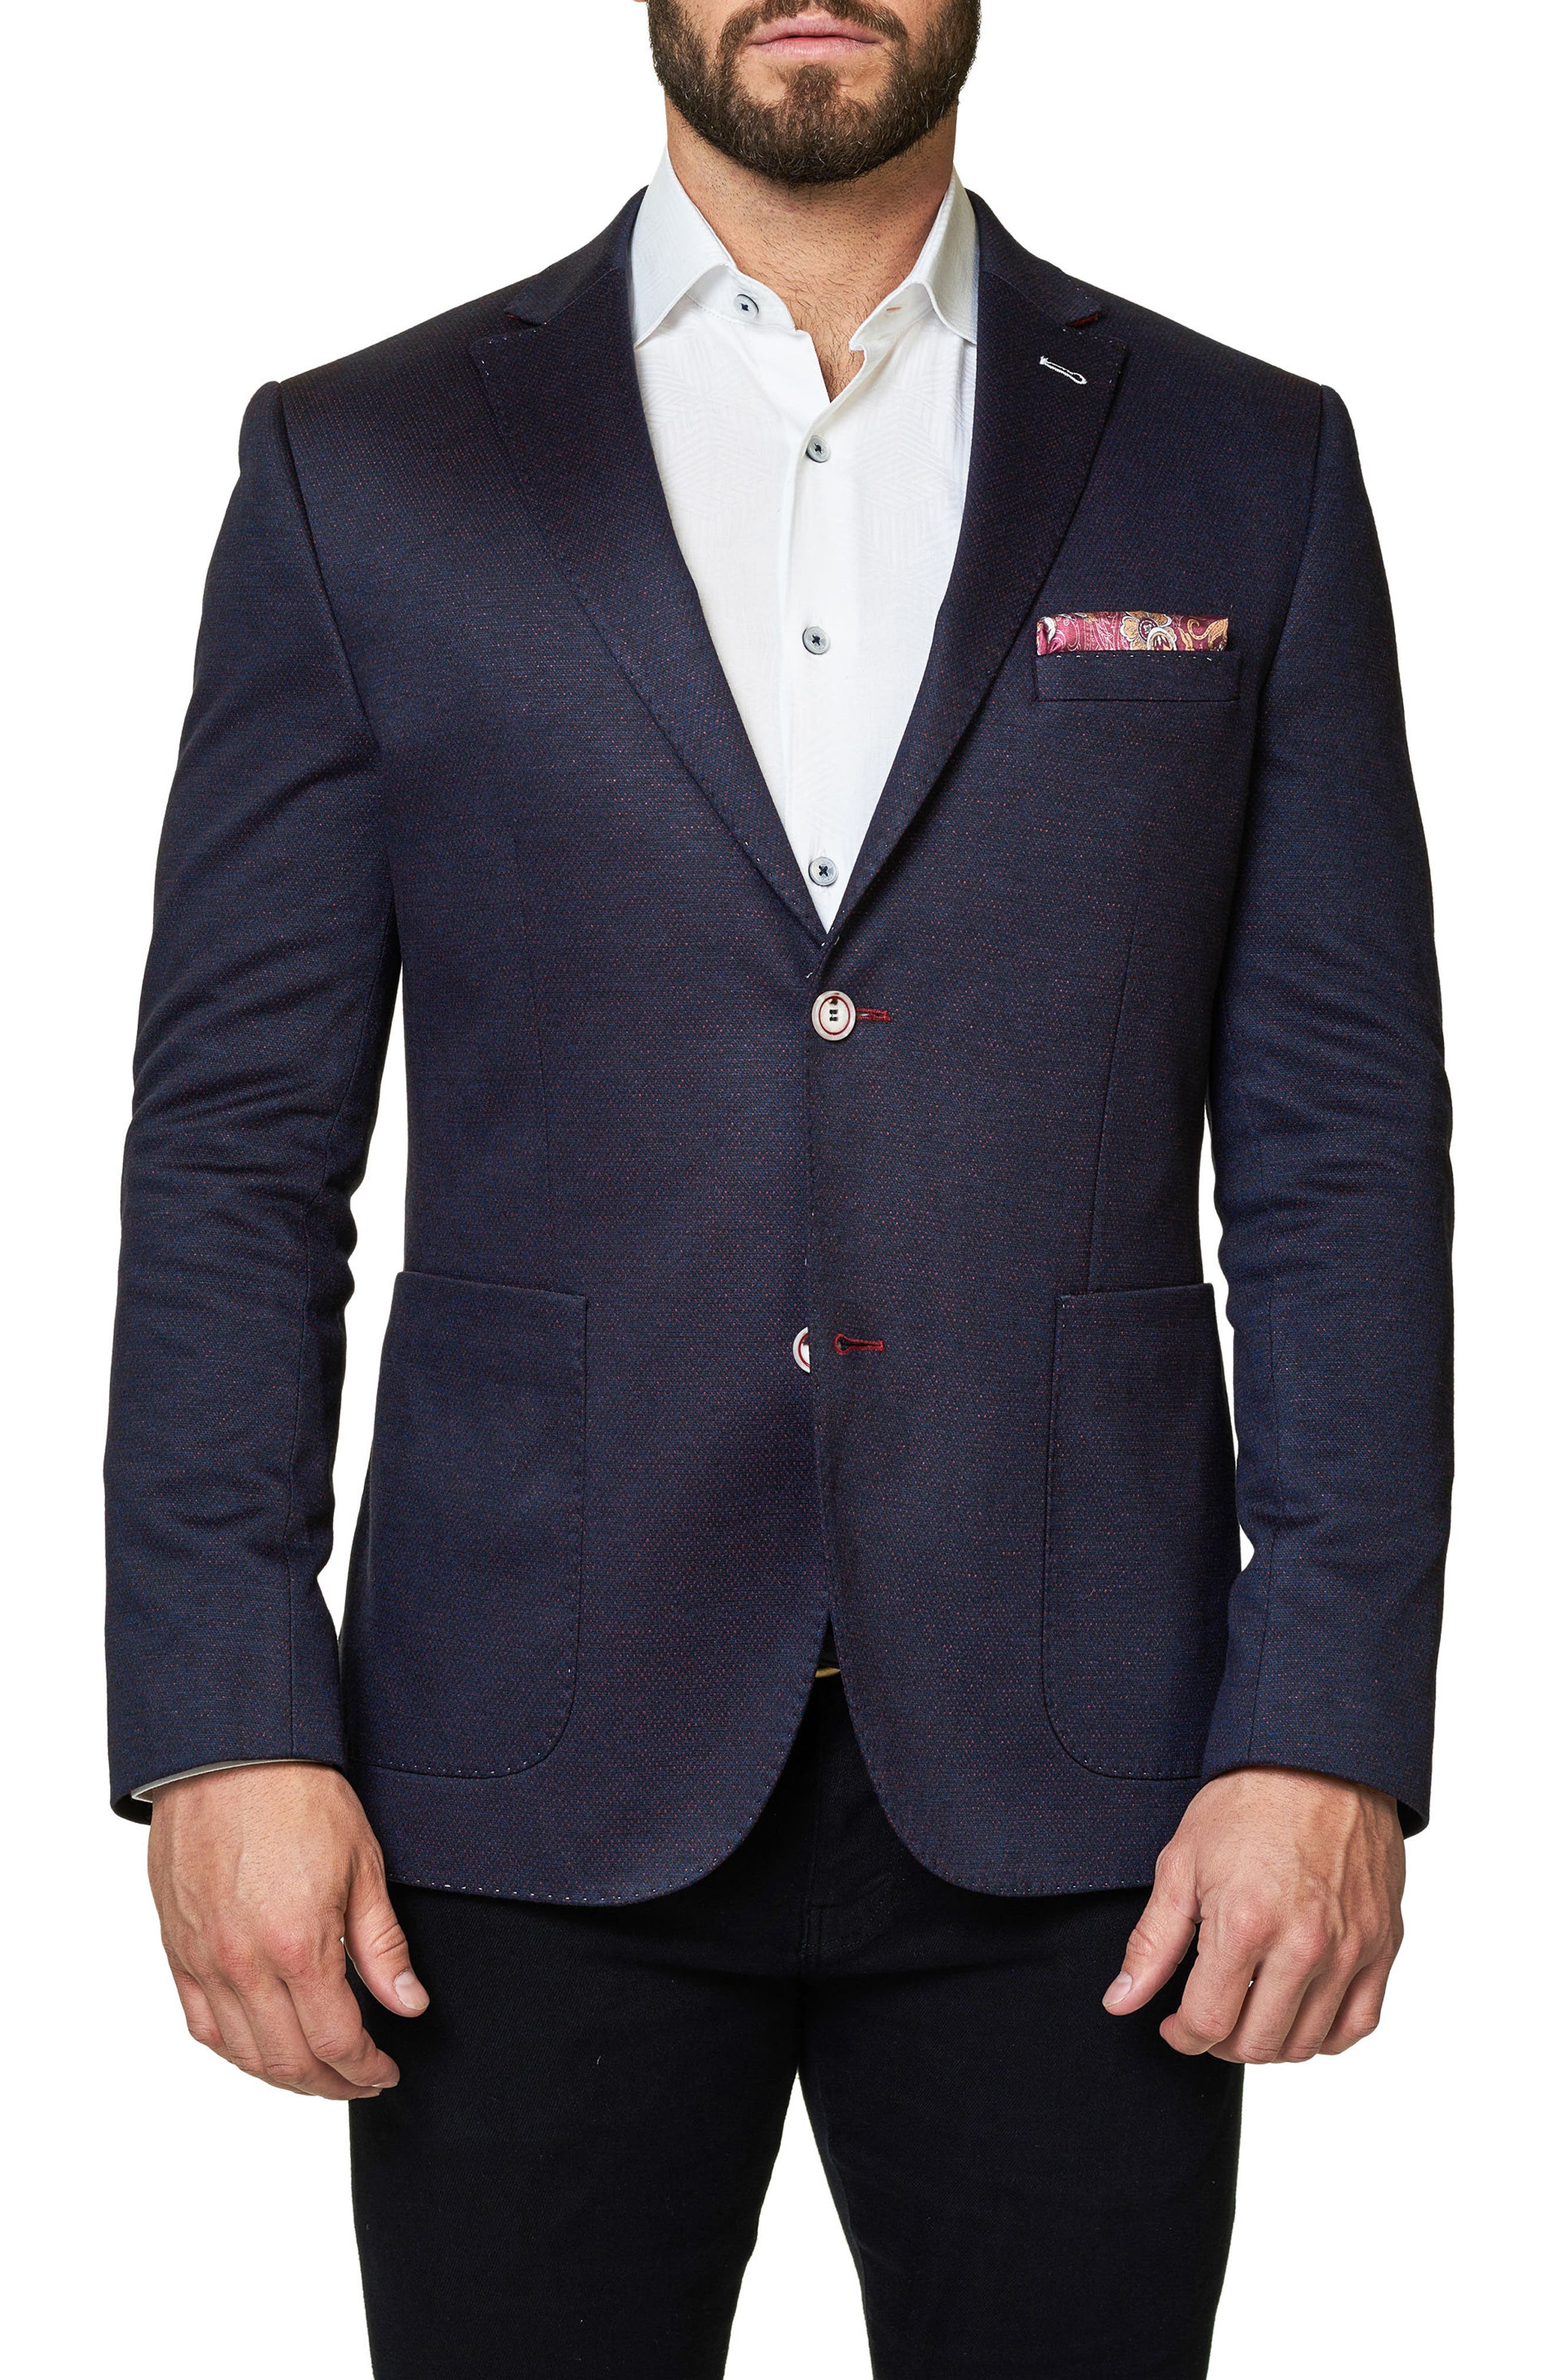 Main Image - Maceoo Slim Fit Jacquard Blazer